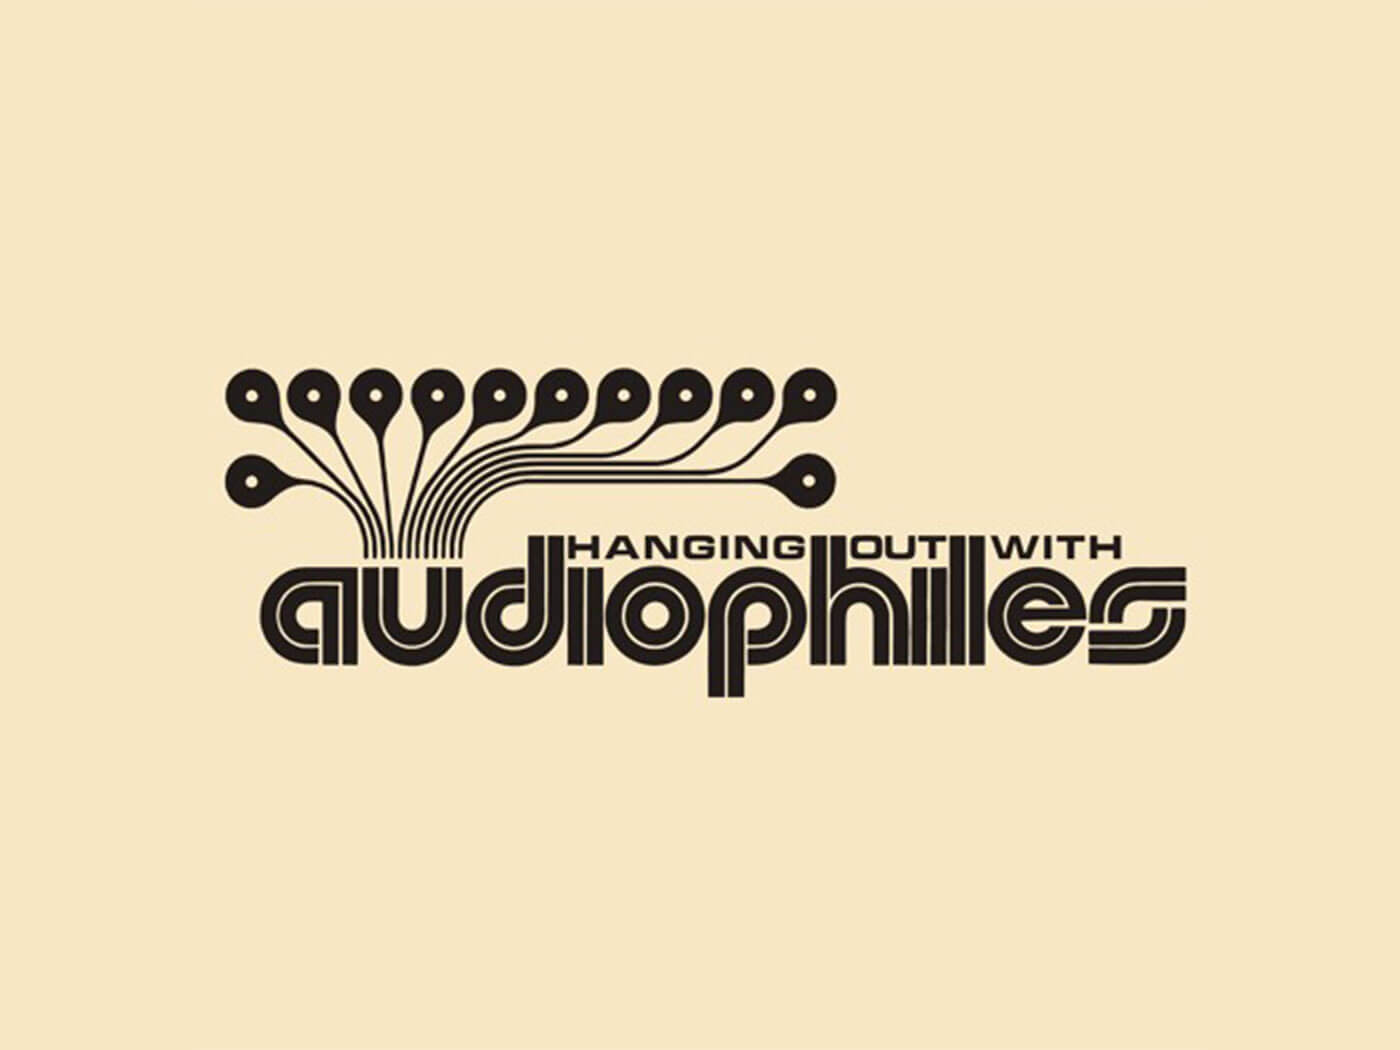 hanging out with audiophiles